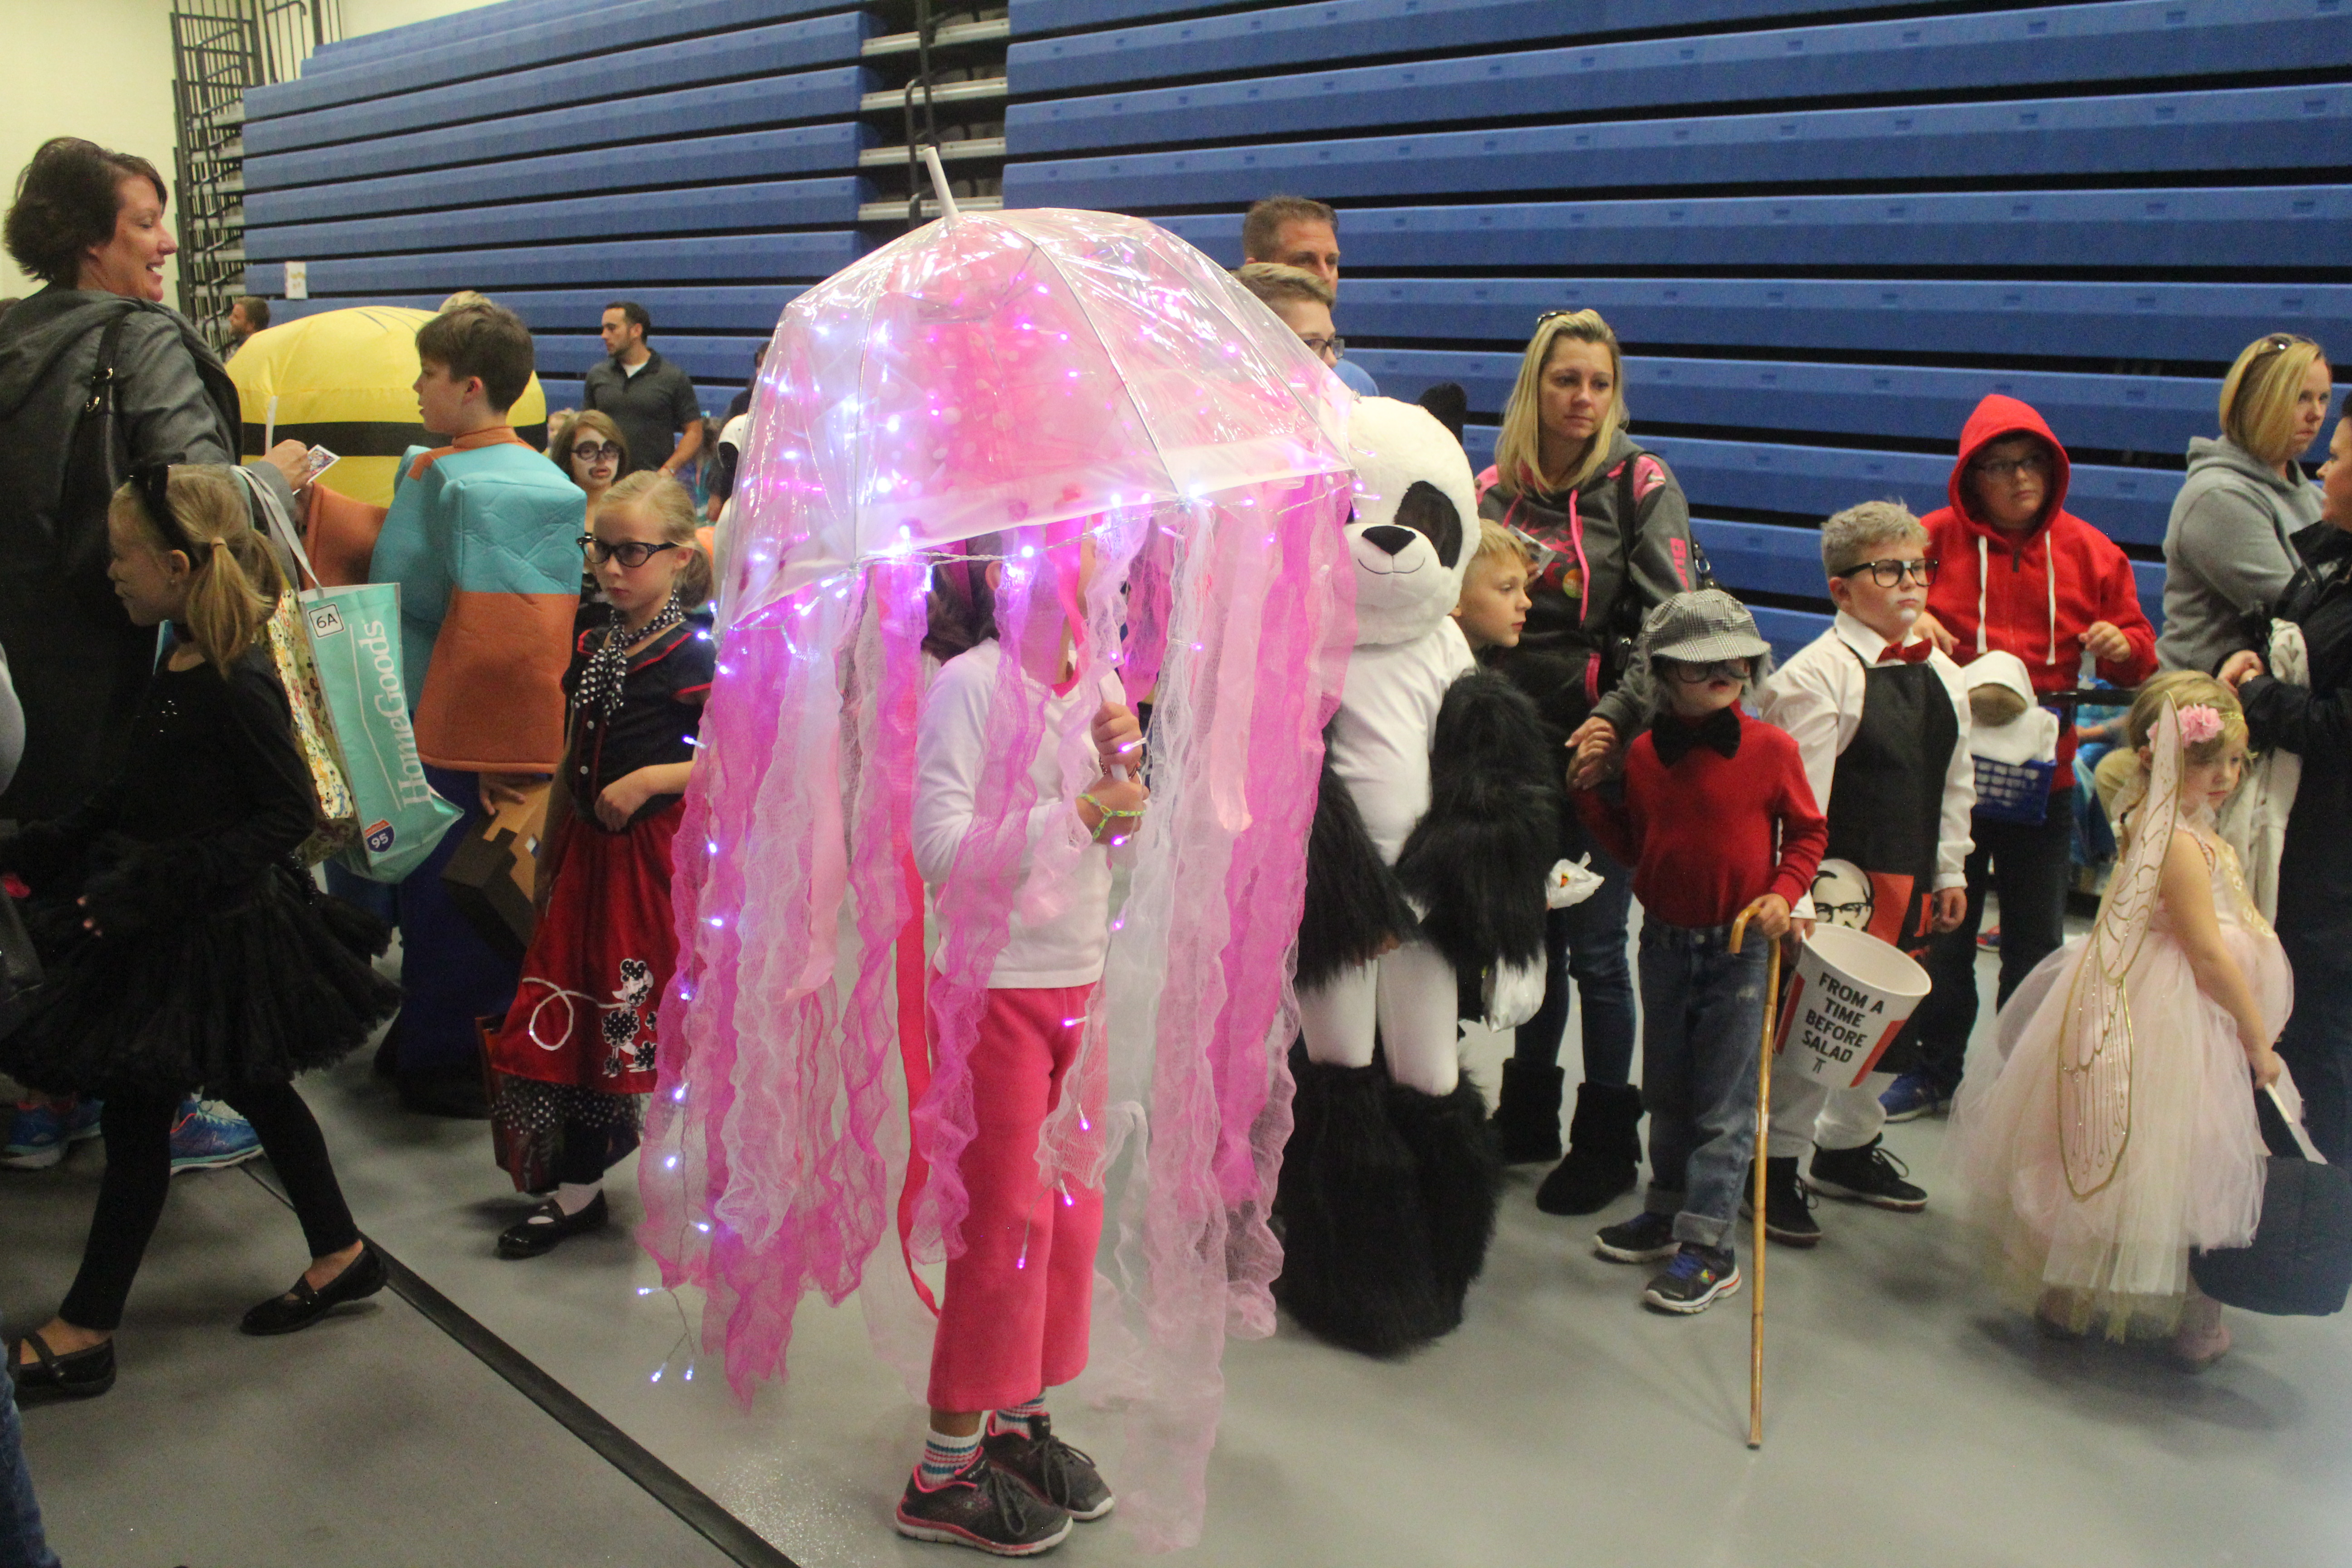 A girl is dressed as a Jelly Fish